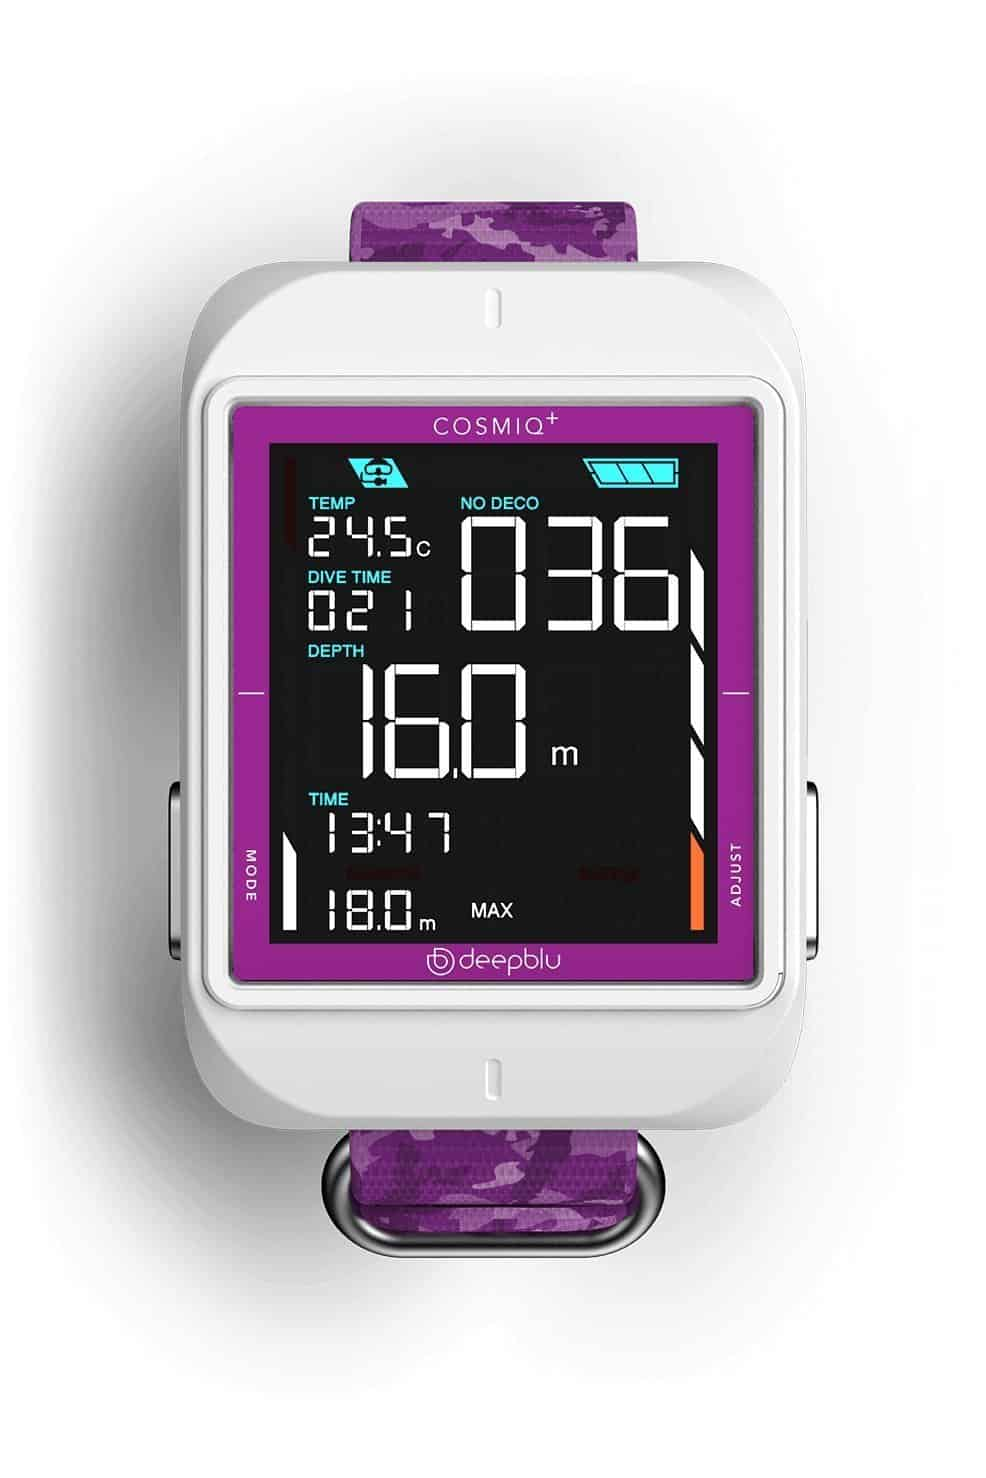 Cosmiq Dive Computer Lilac Purple and White